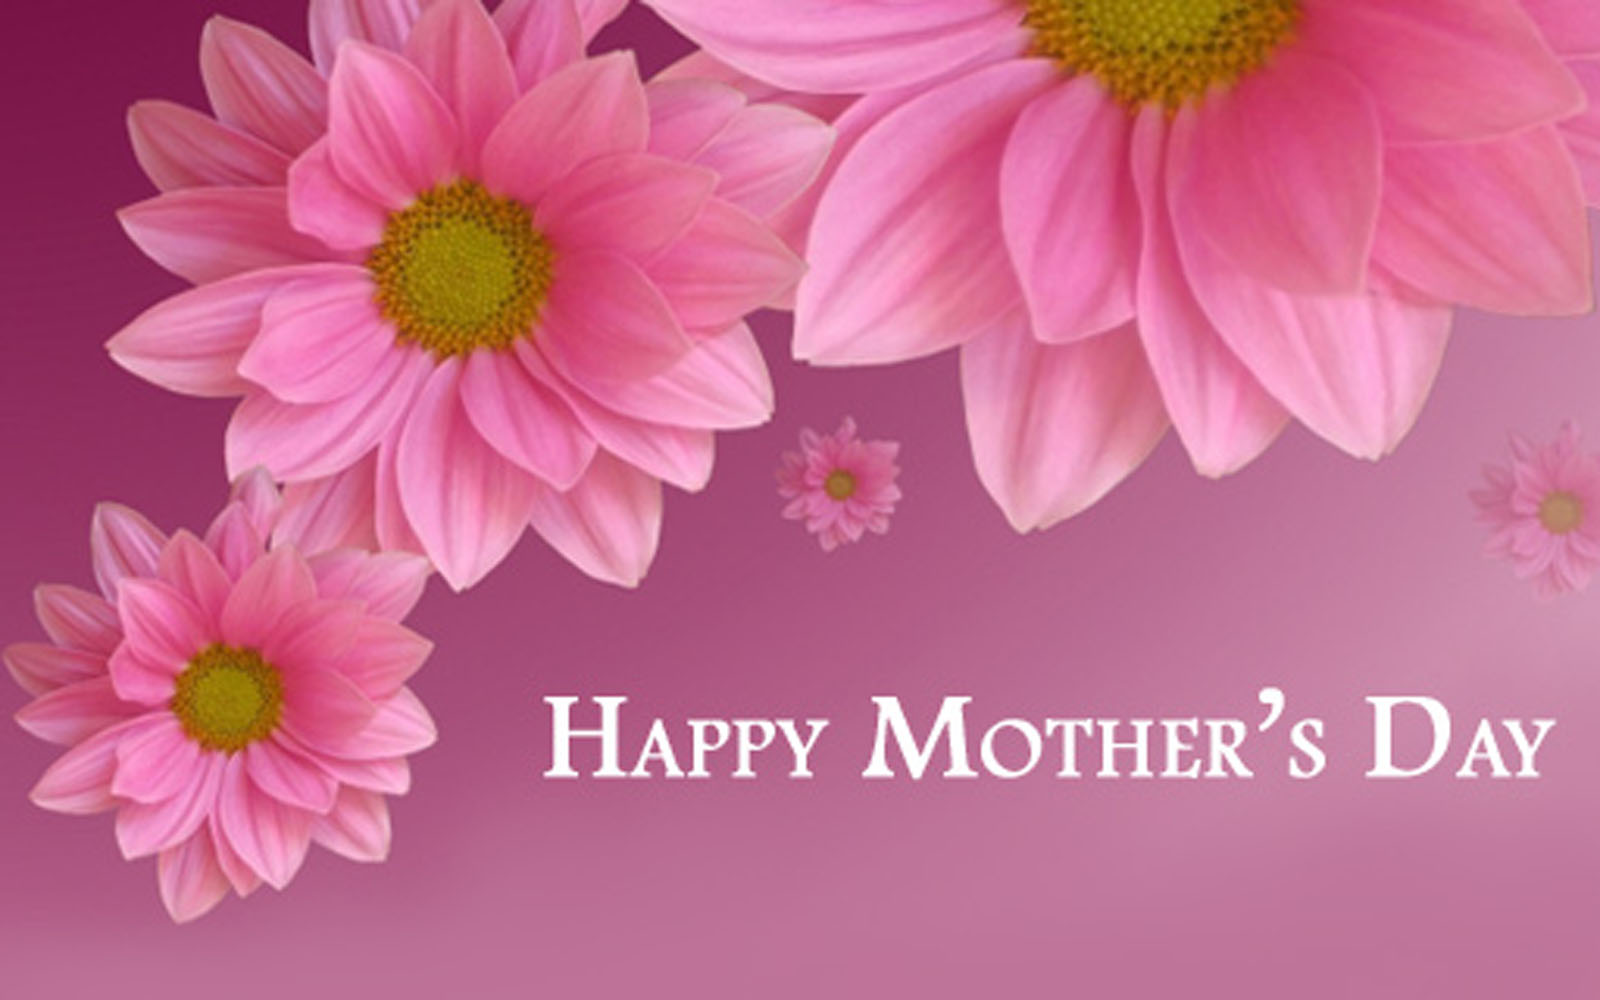 HD Wallpapers: Happy Mother's Day Wallpapers